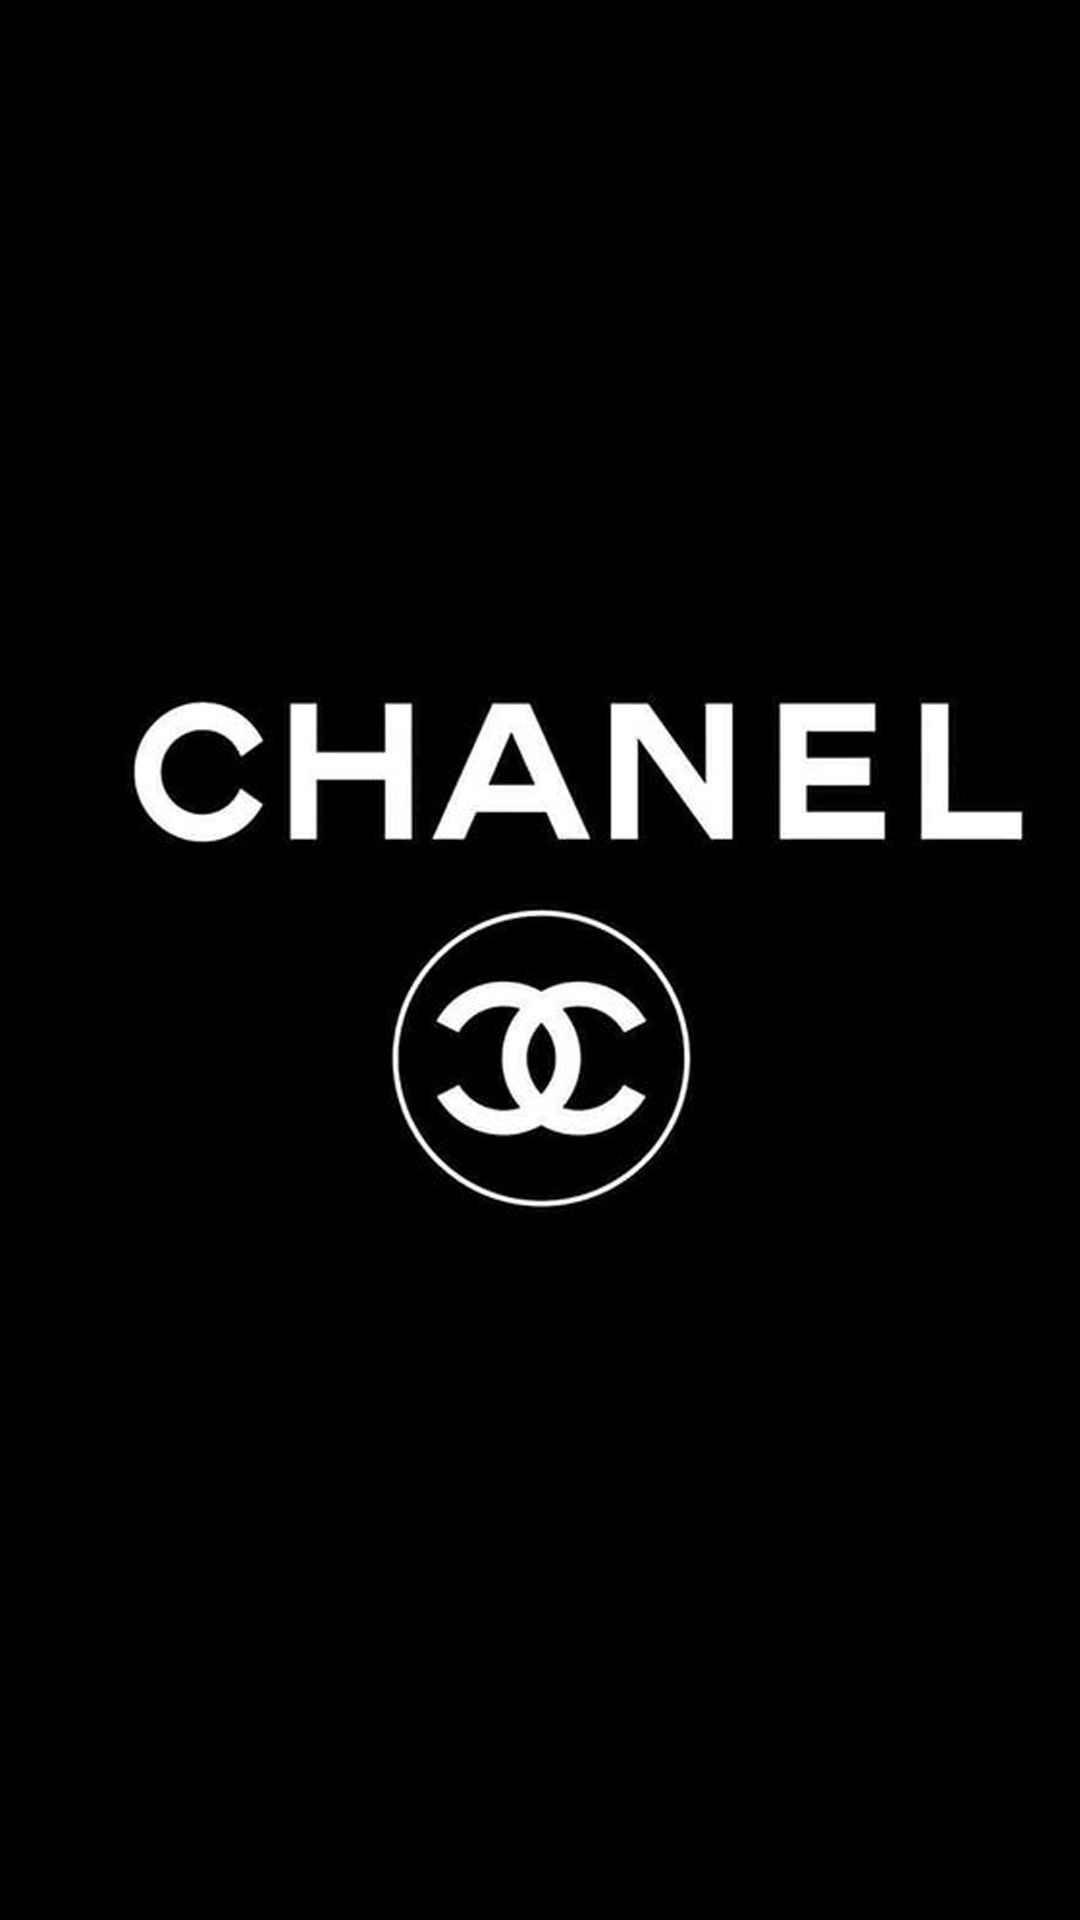 New Chanel Best Images Chanel Wallpapers Coco Chanel Wallpaper